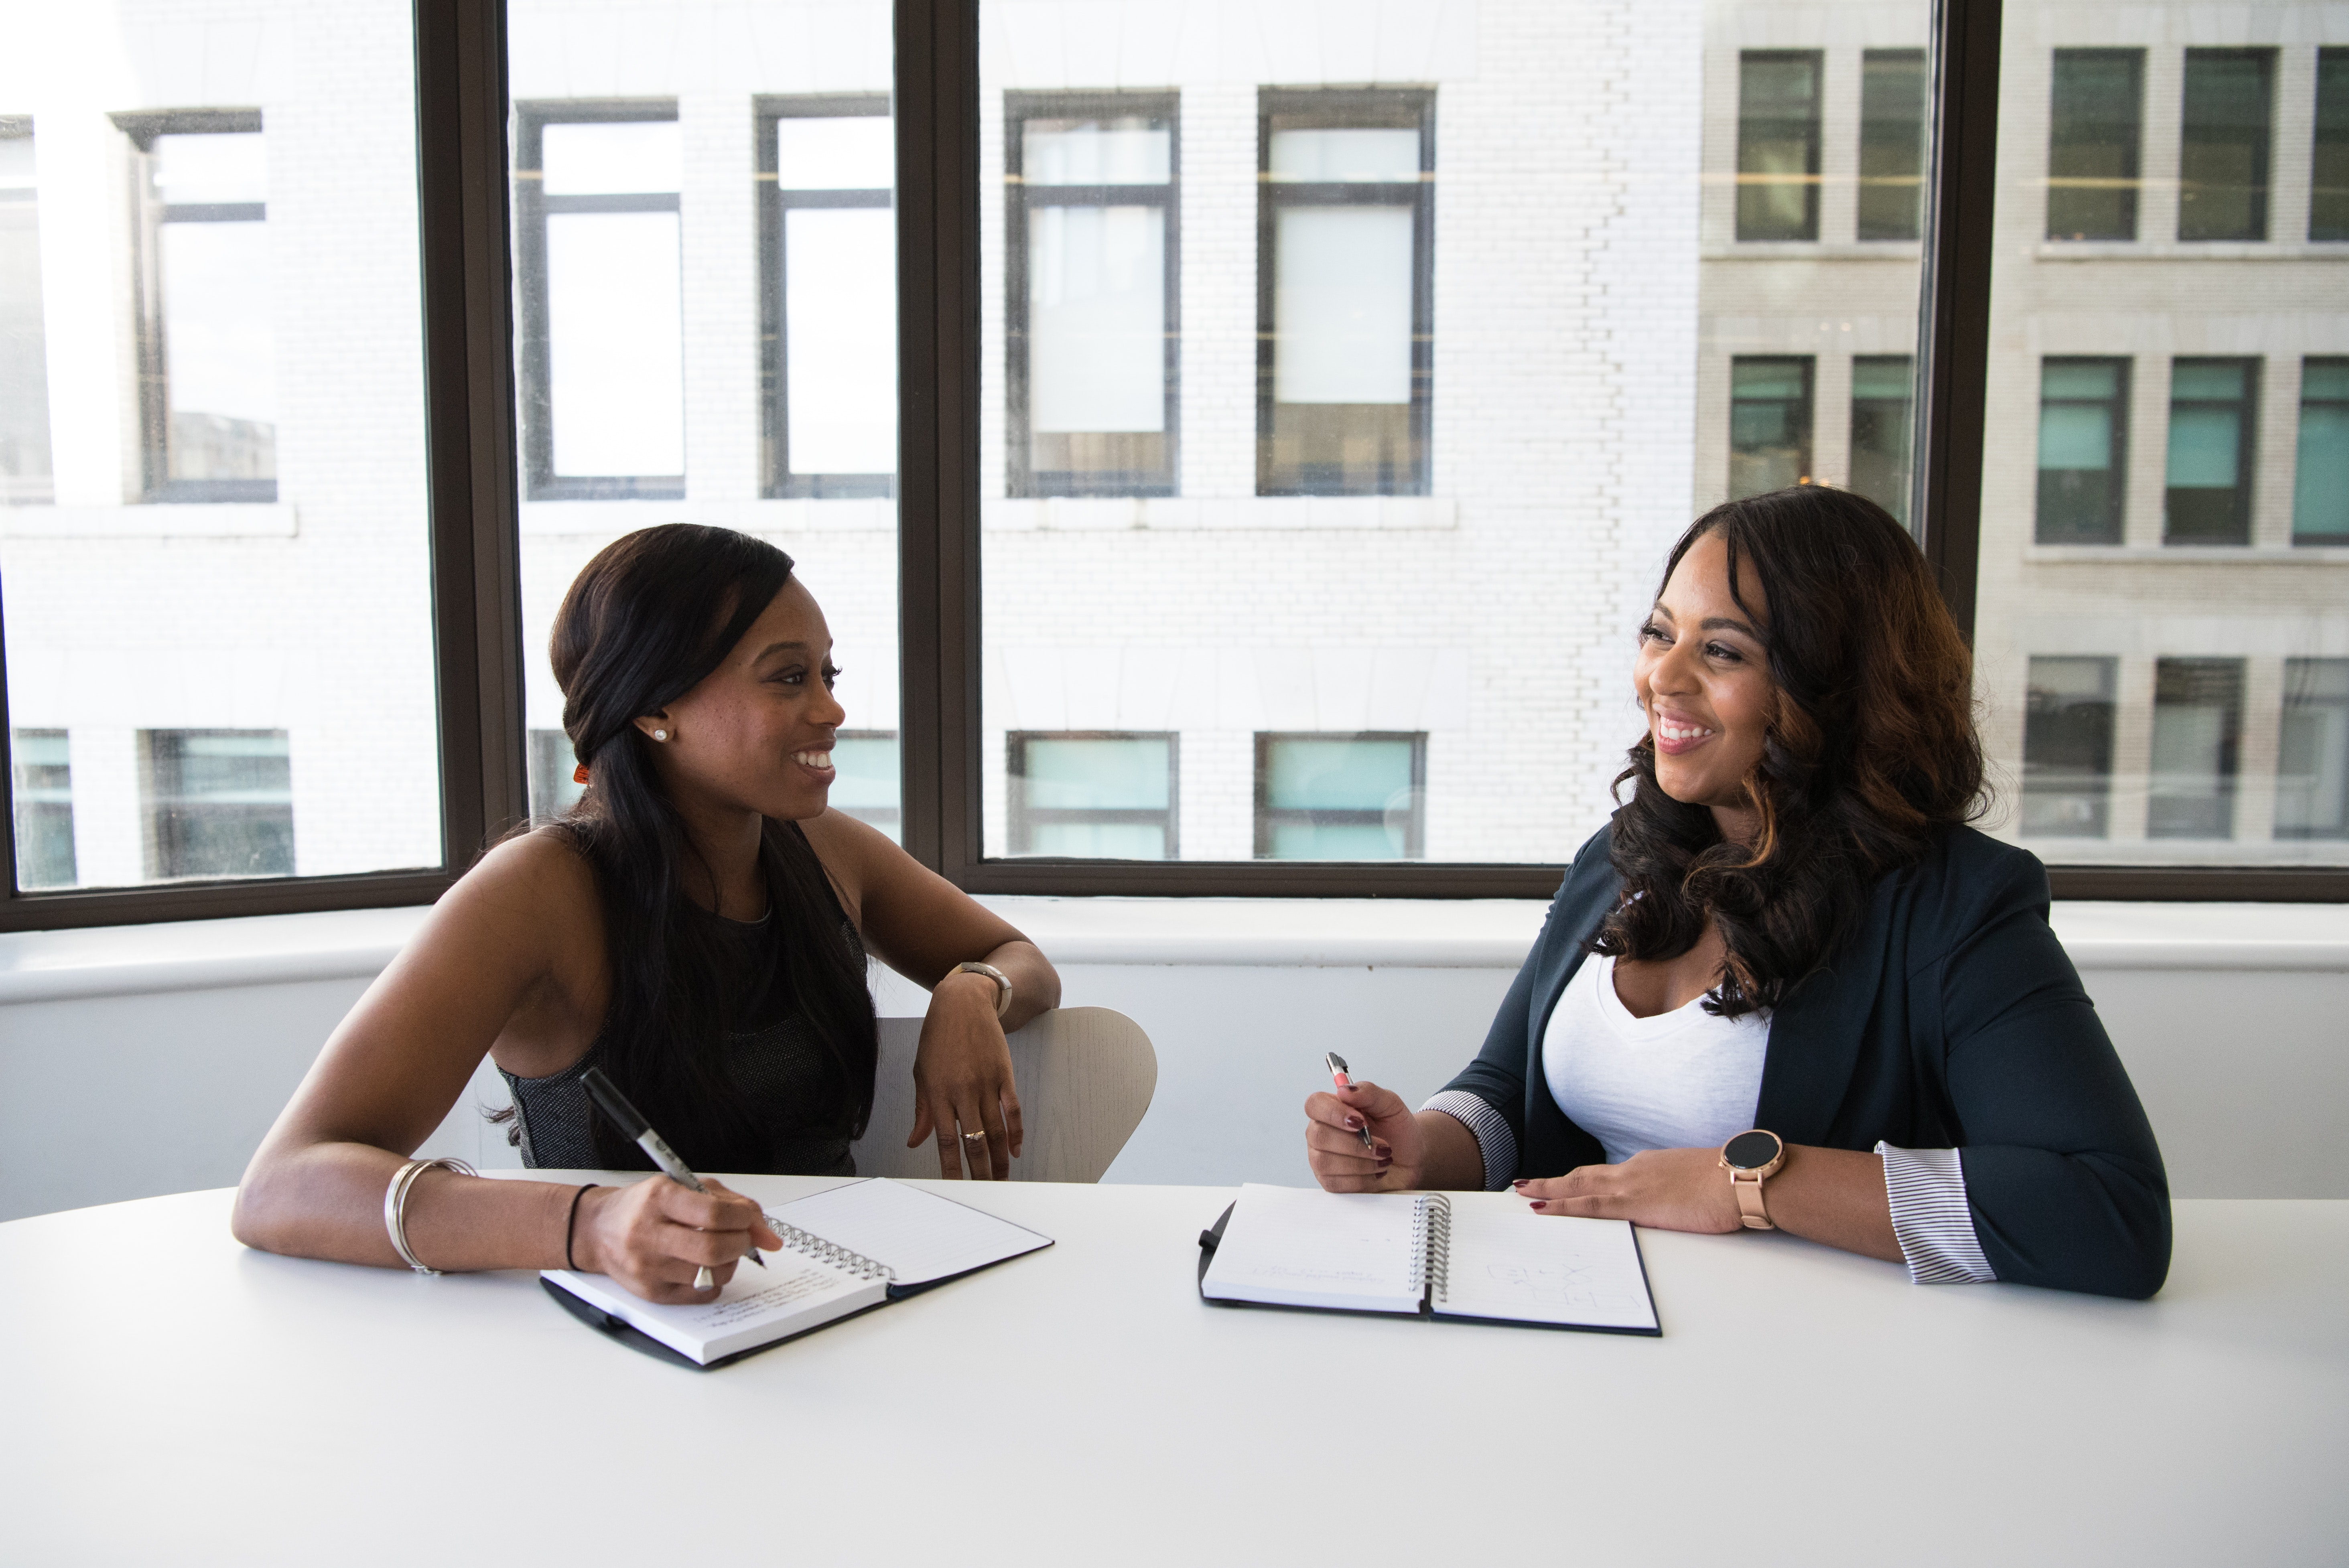 Two ladies in an office setting